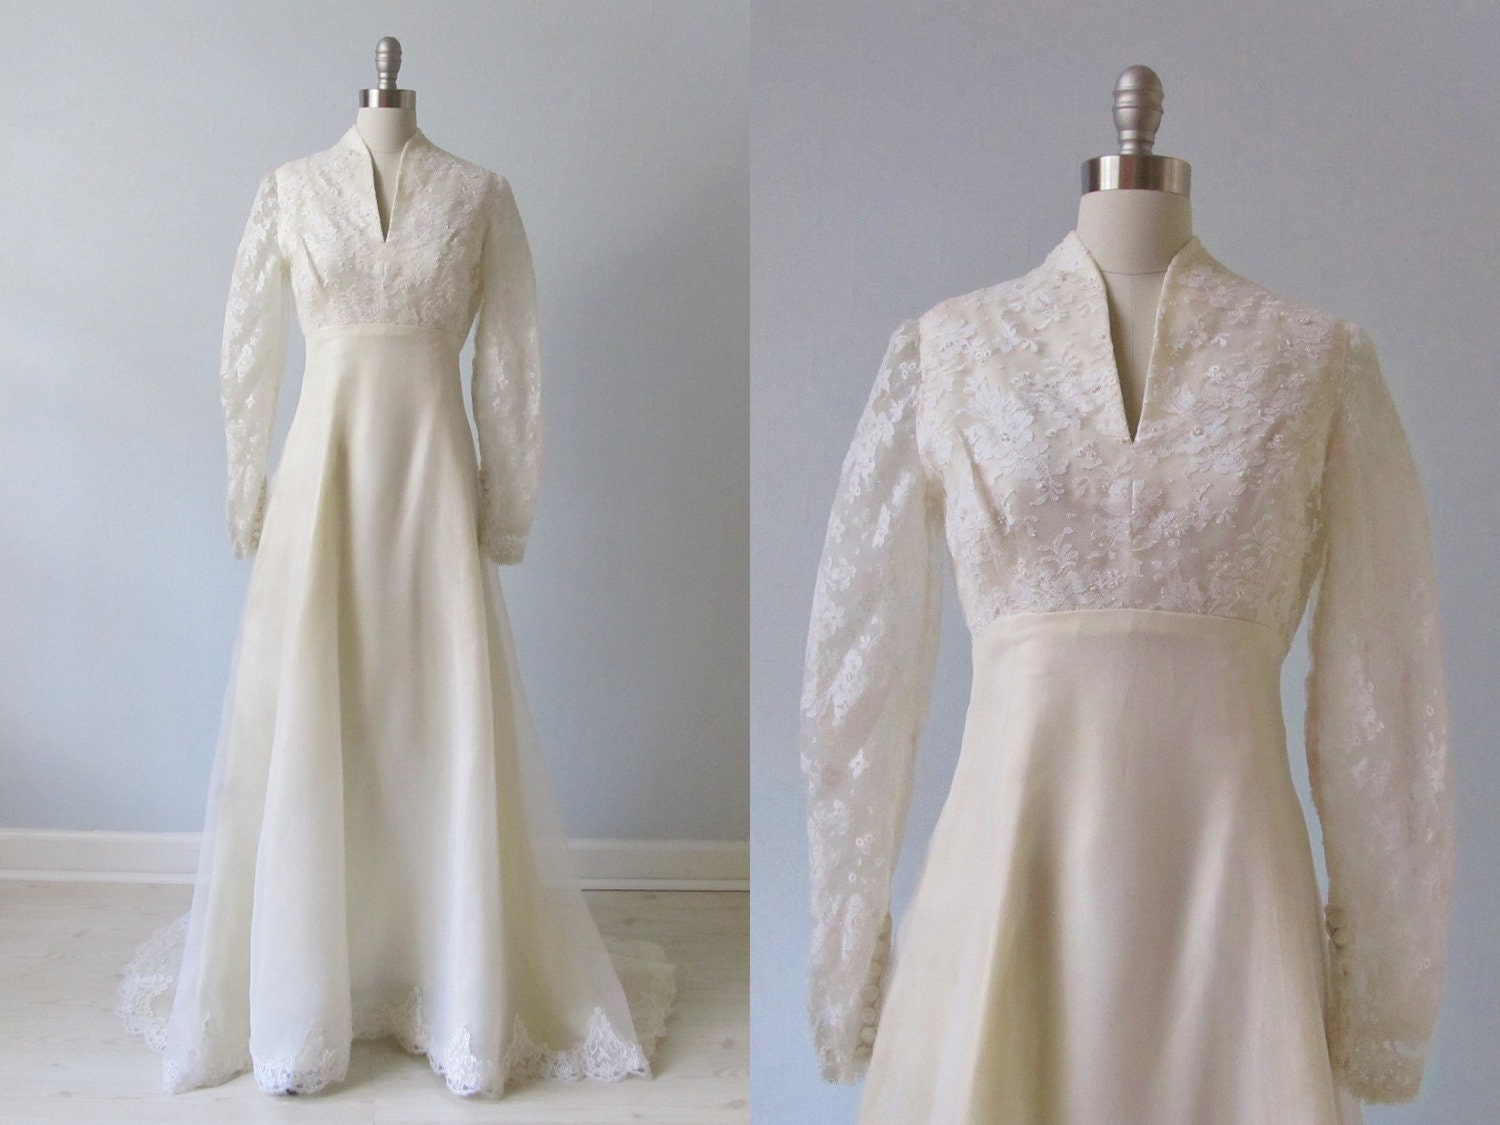 Vintage wedding dress 1970s wedding dress high collar for 1970s vintage wedding dresses